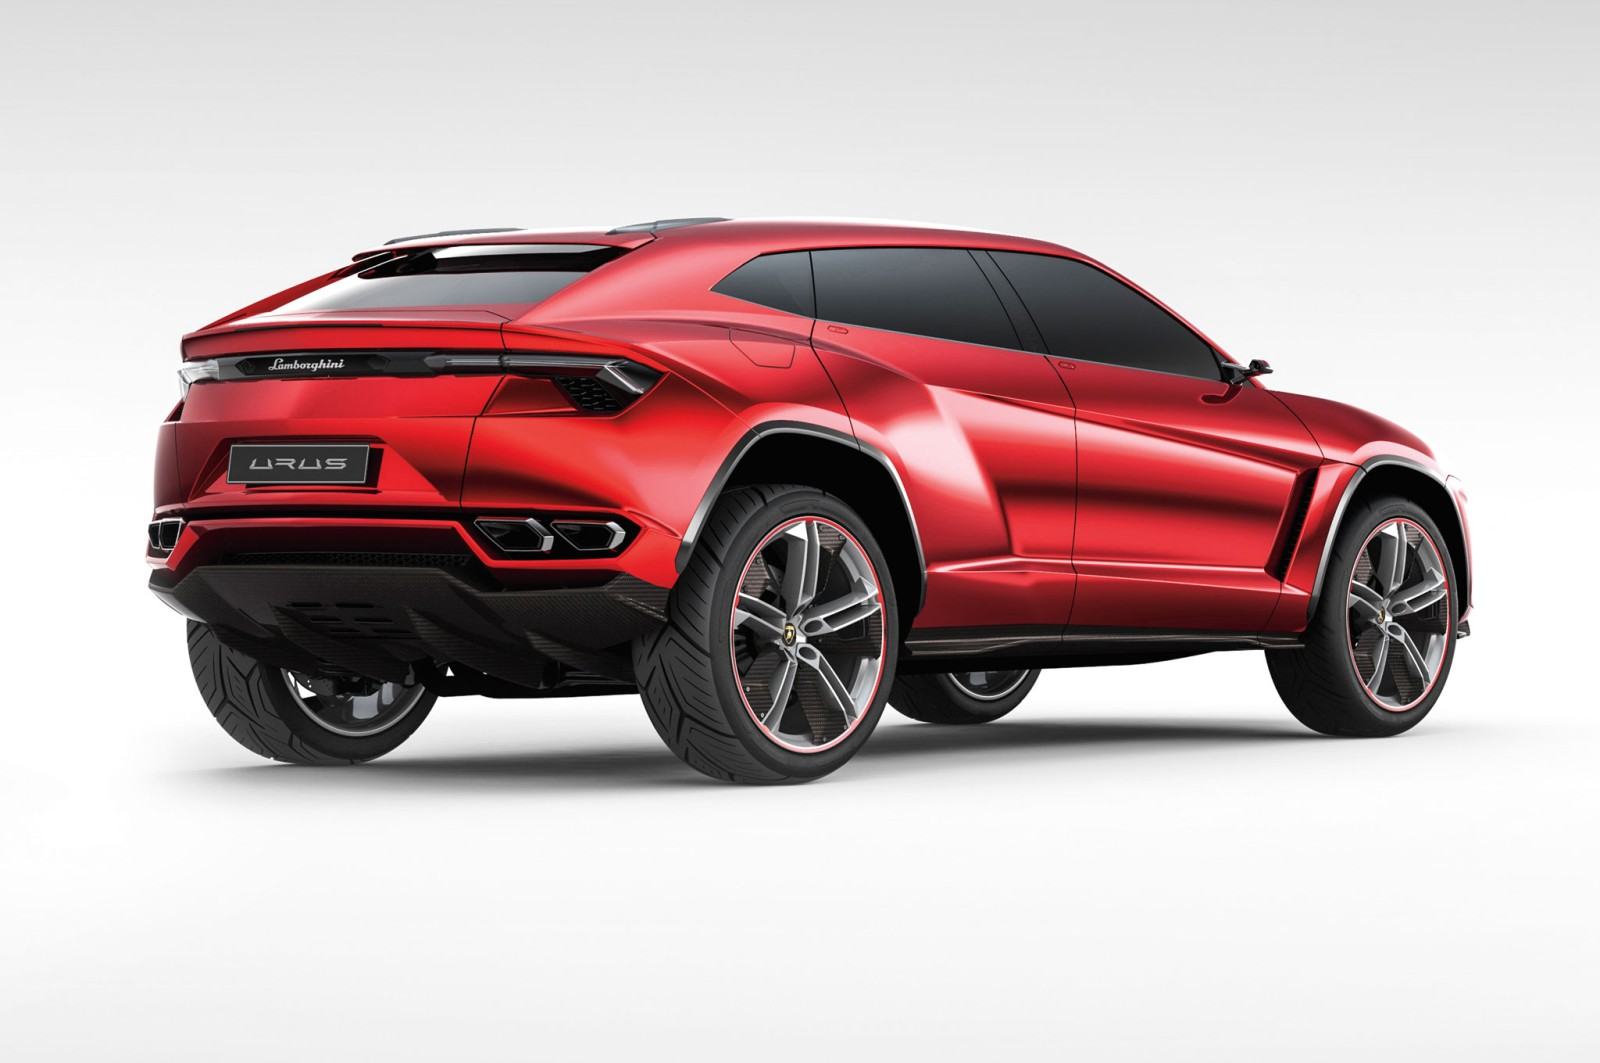 Lamborghini Urus teased again before debut